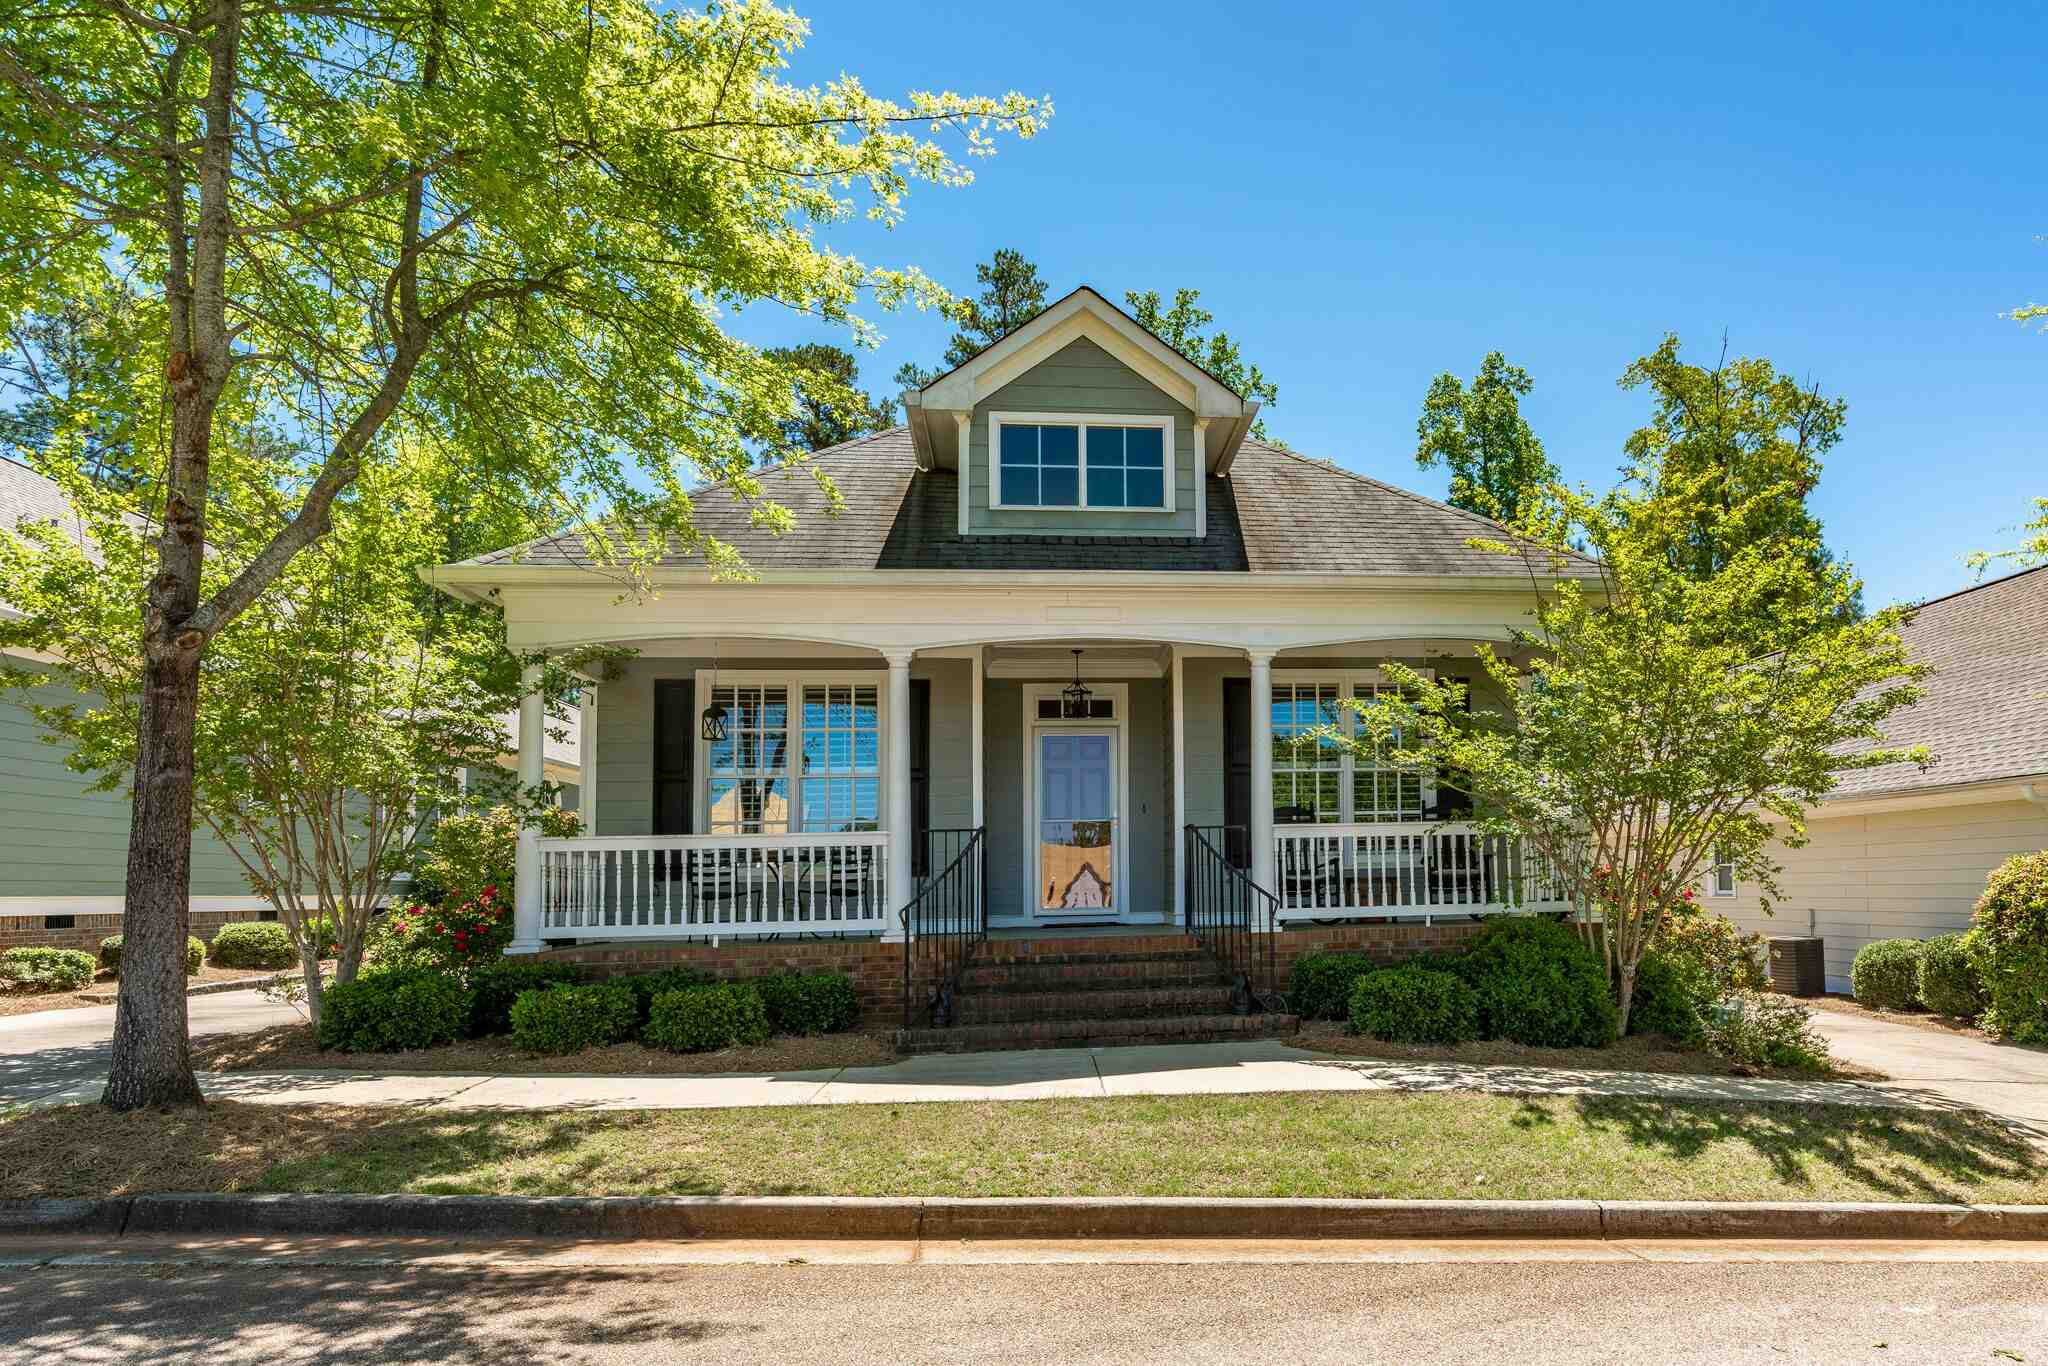 One of Lake Oconee Harbor Club 3 Bedroom Homes for Sale at 1541 CARRIAGE RIDGE DRIVE